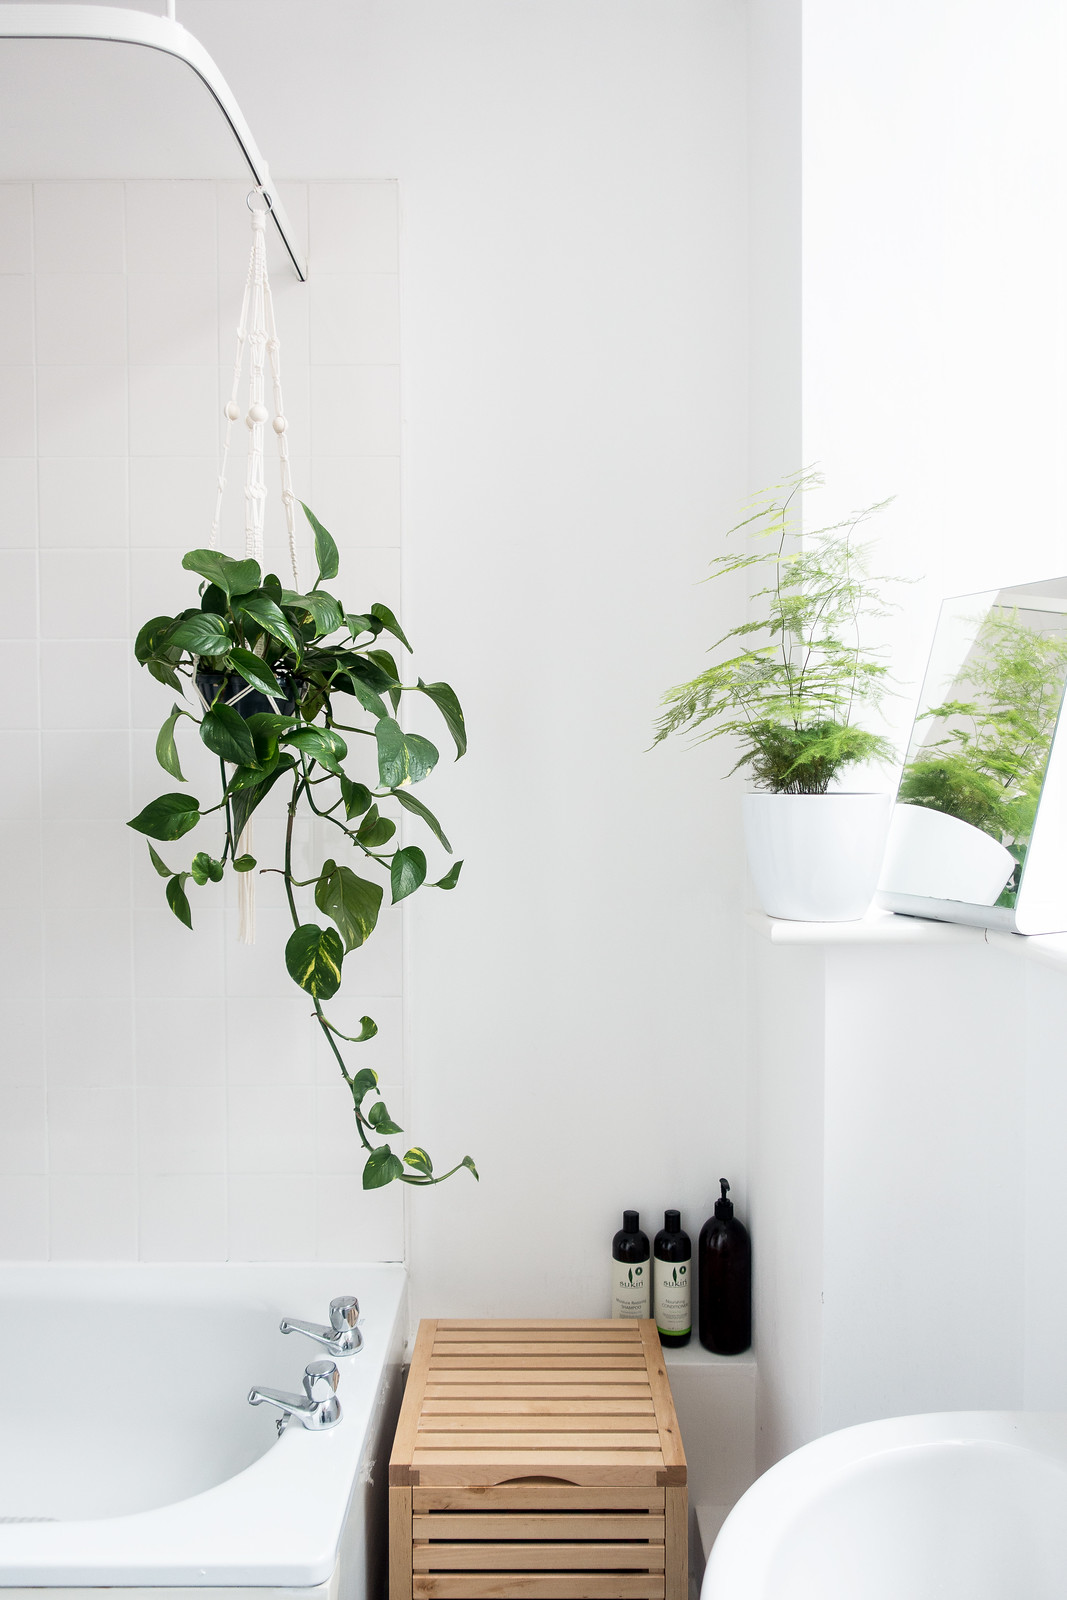 Shower Plants: 5 Plants That Thrive In Your Bathroom